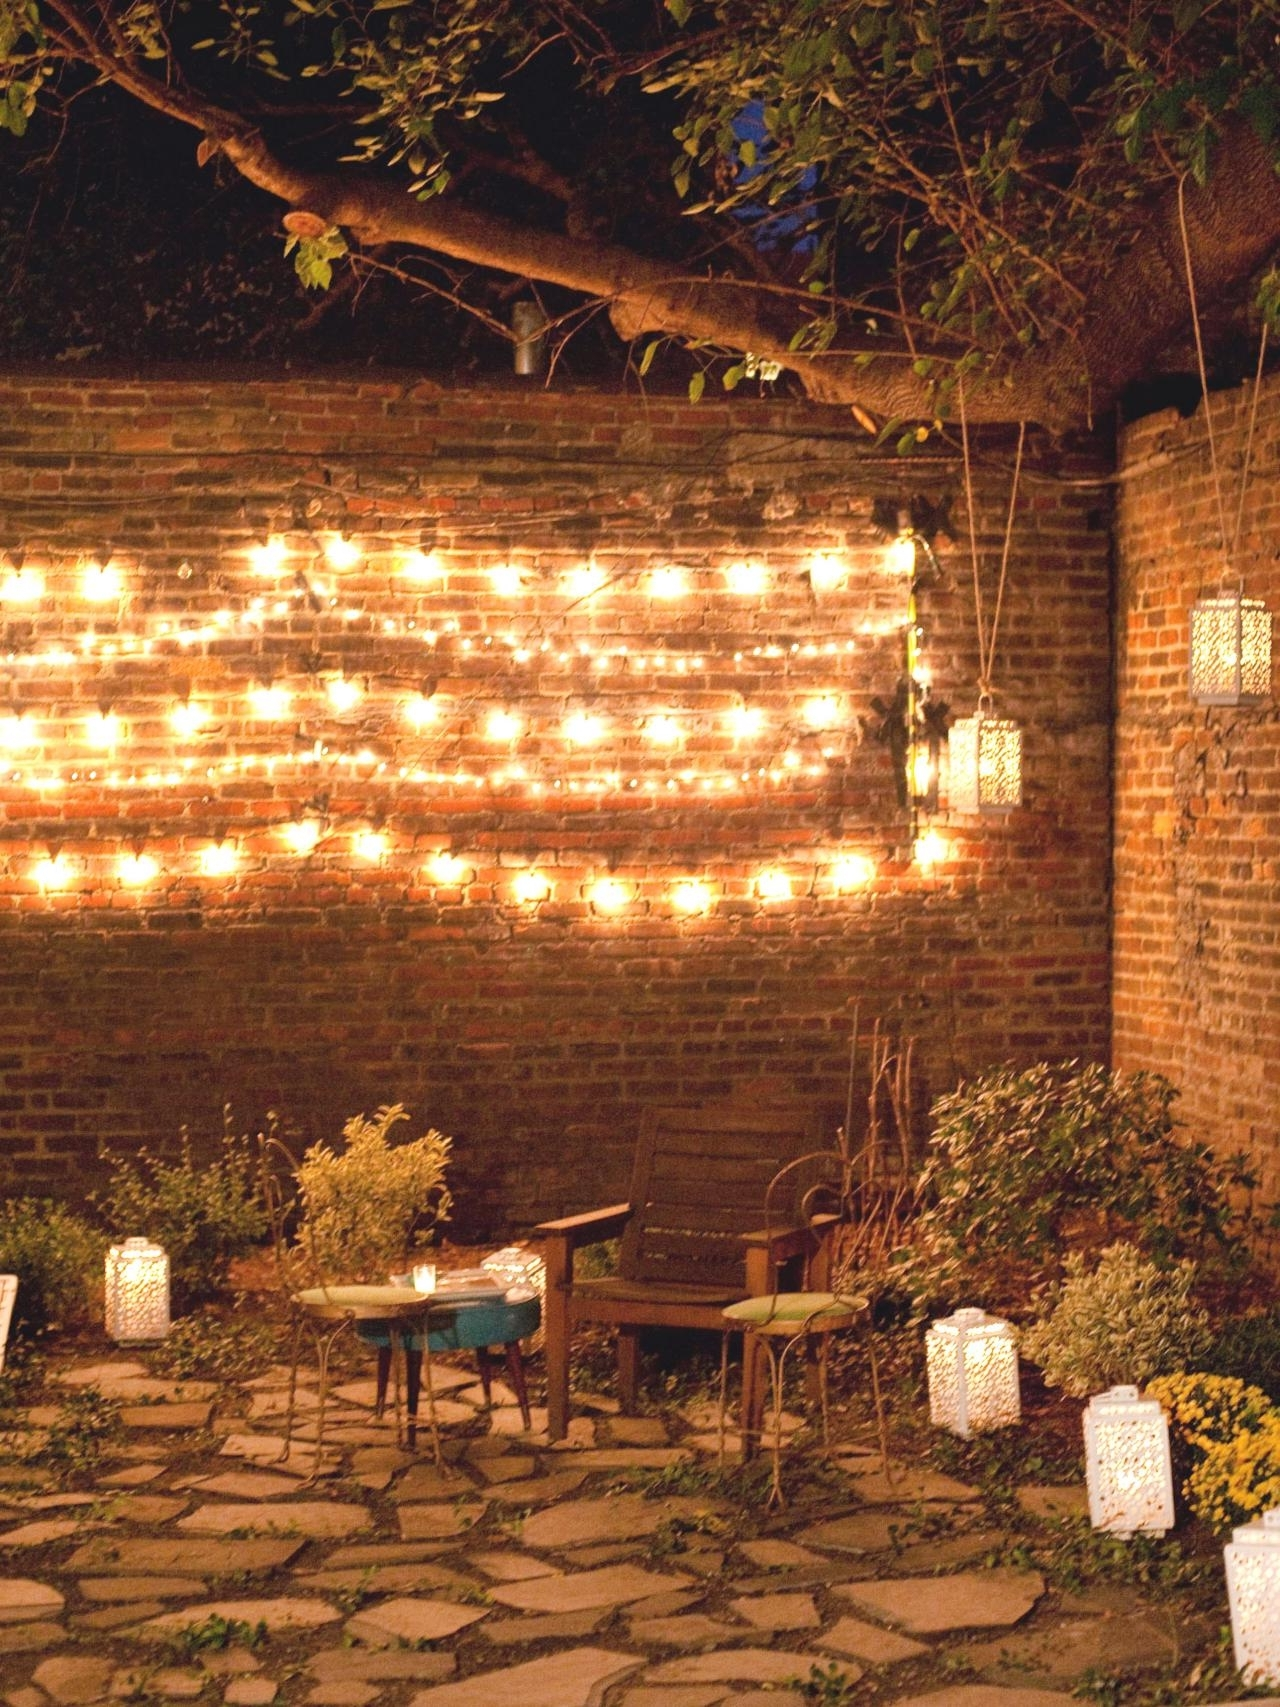 Preferred Outdoor Hanging Wall Lights Throughout Hanging String Lights Outdoors Amazing Patio Bright July Diy Outdoor (View 17 of 20)